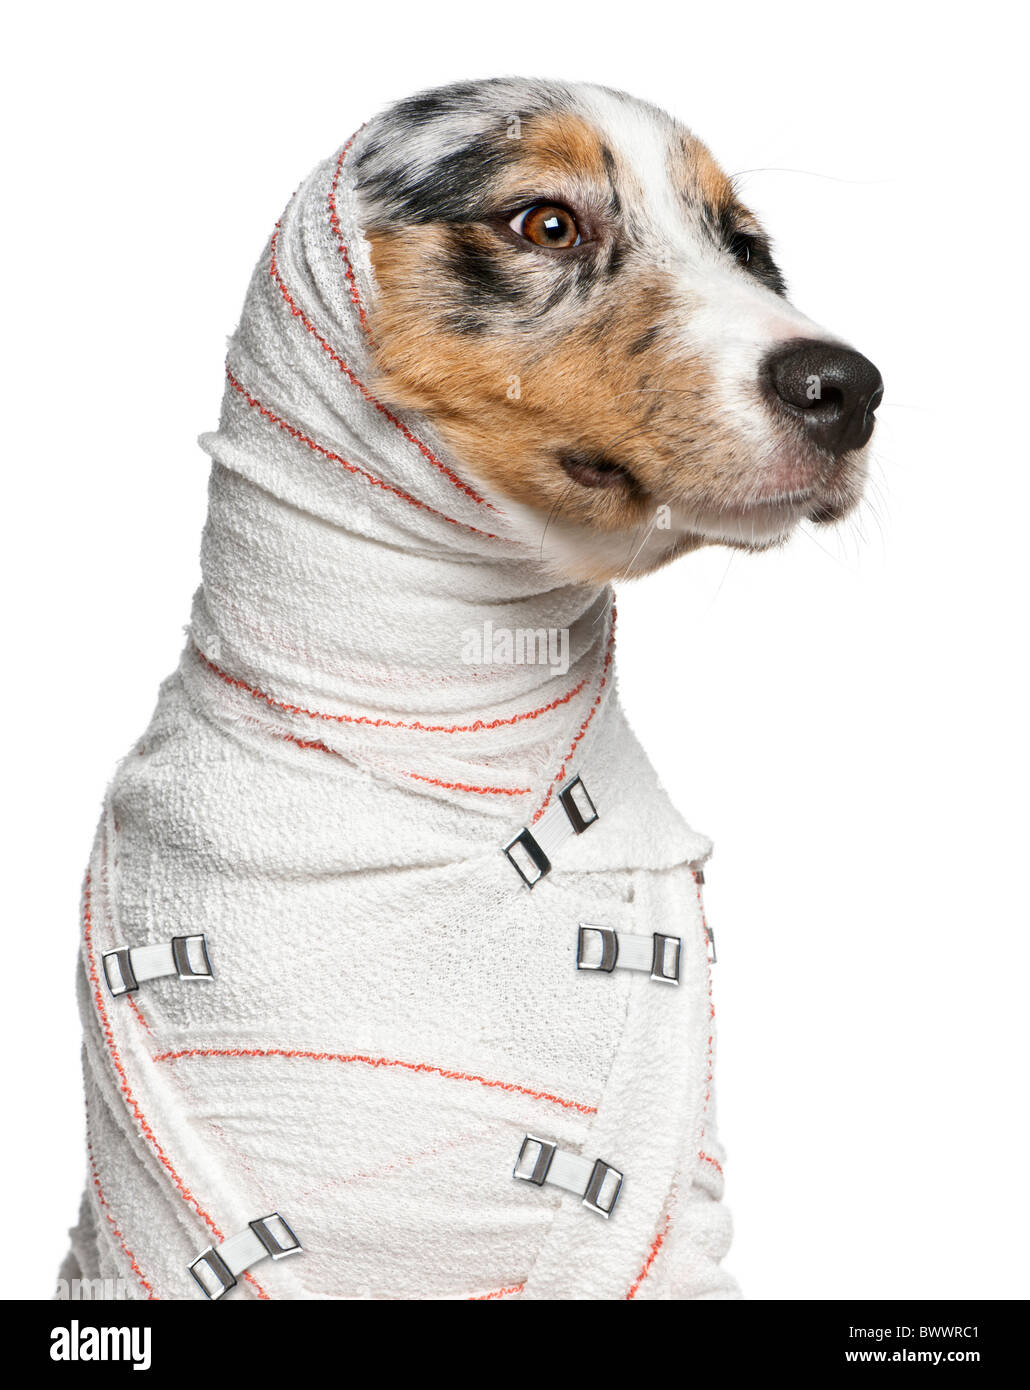 Close-up of Australian Shepherd puppy in bandages, 5 months old, in front of white background - Stock Image